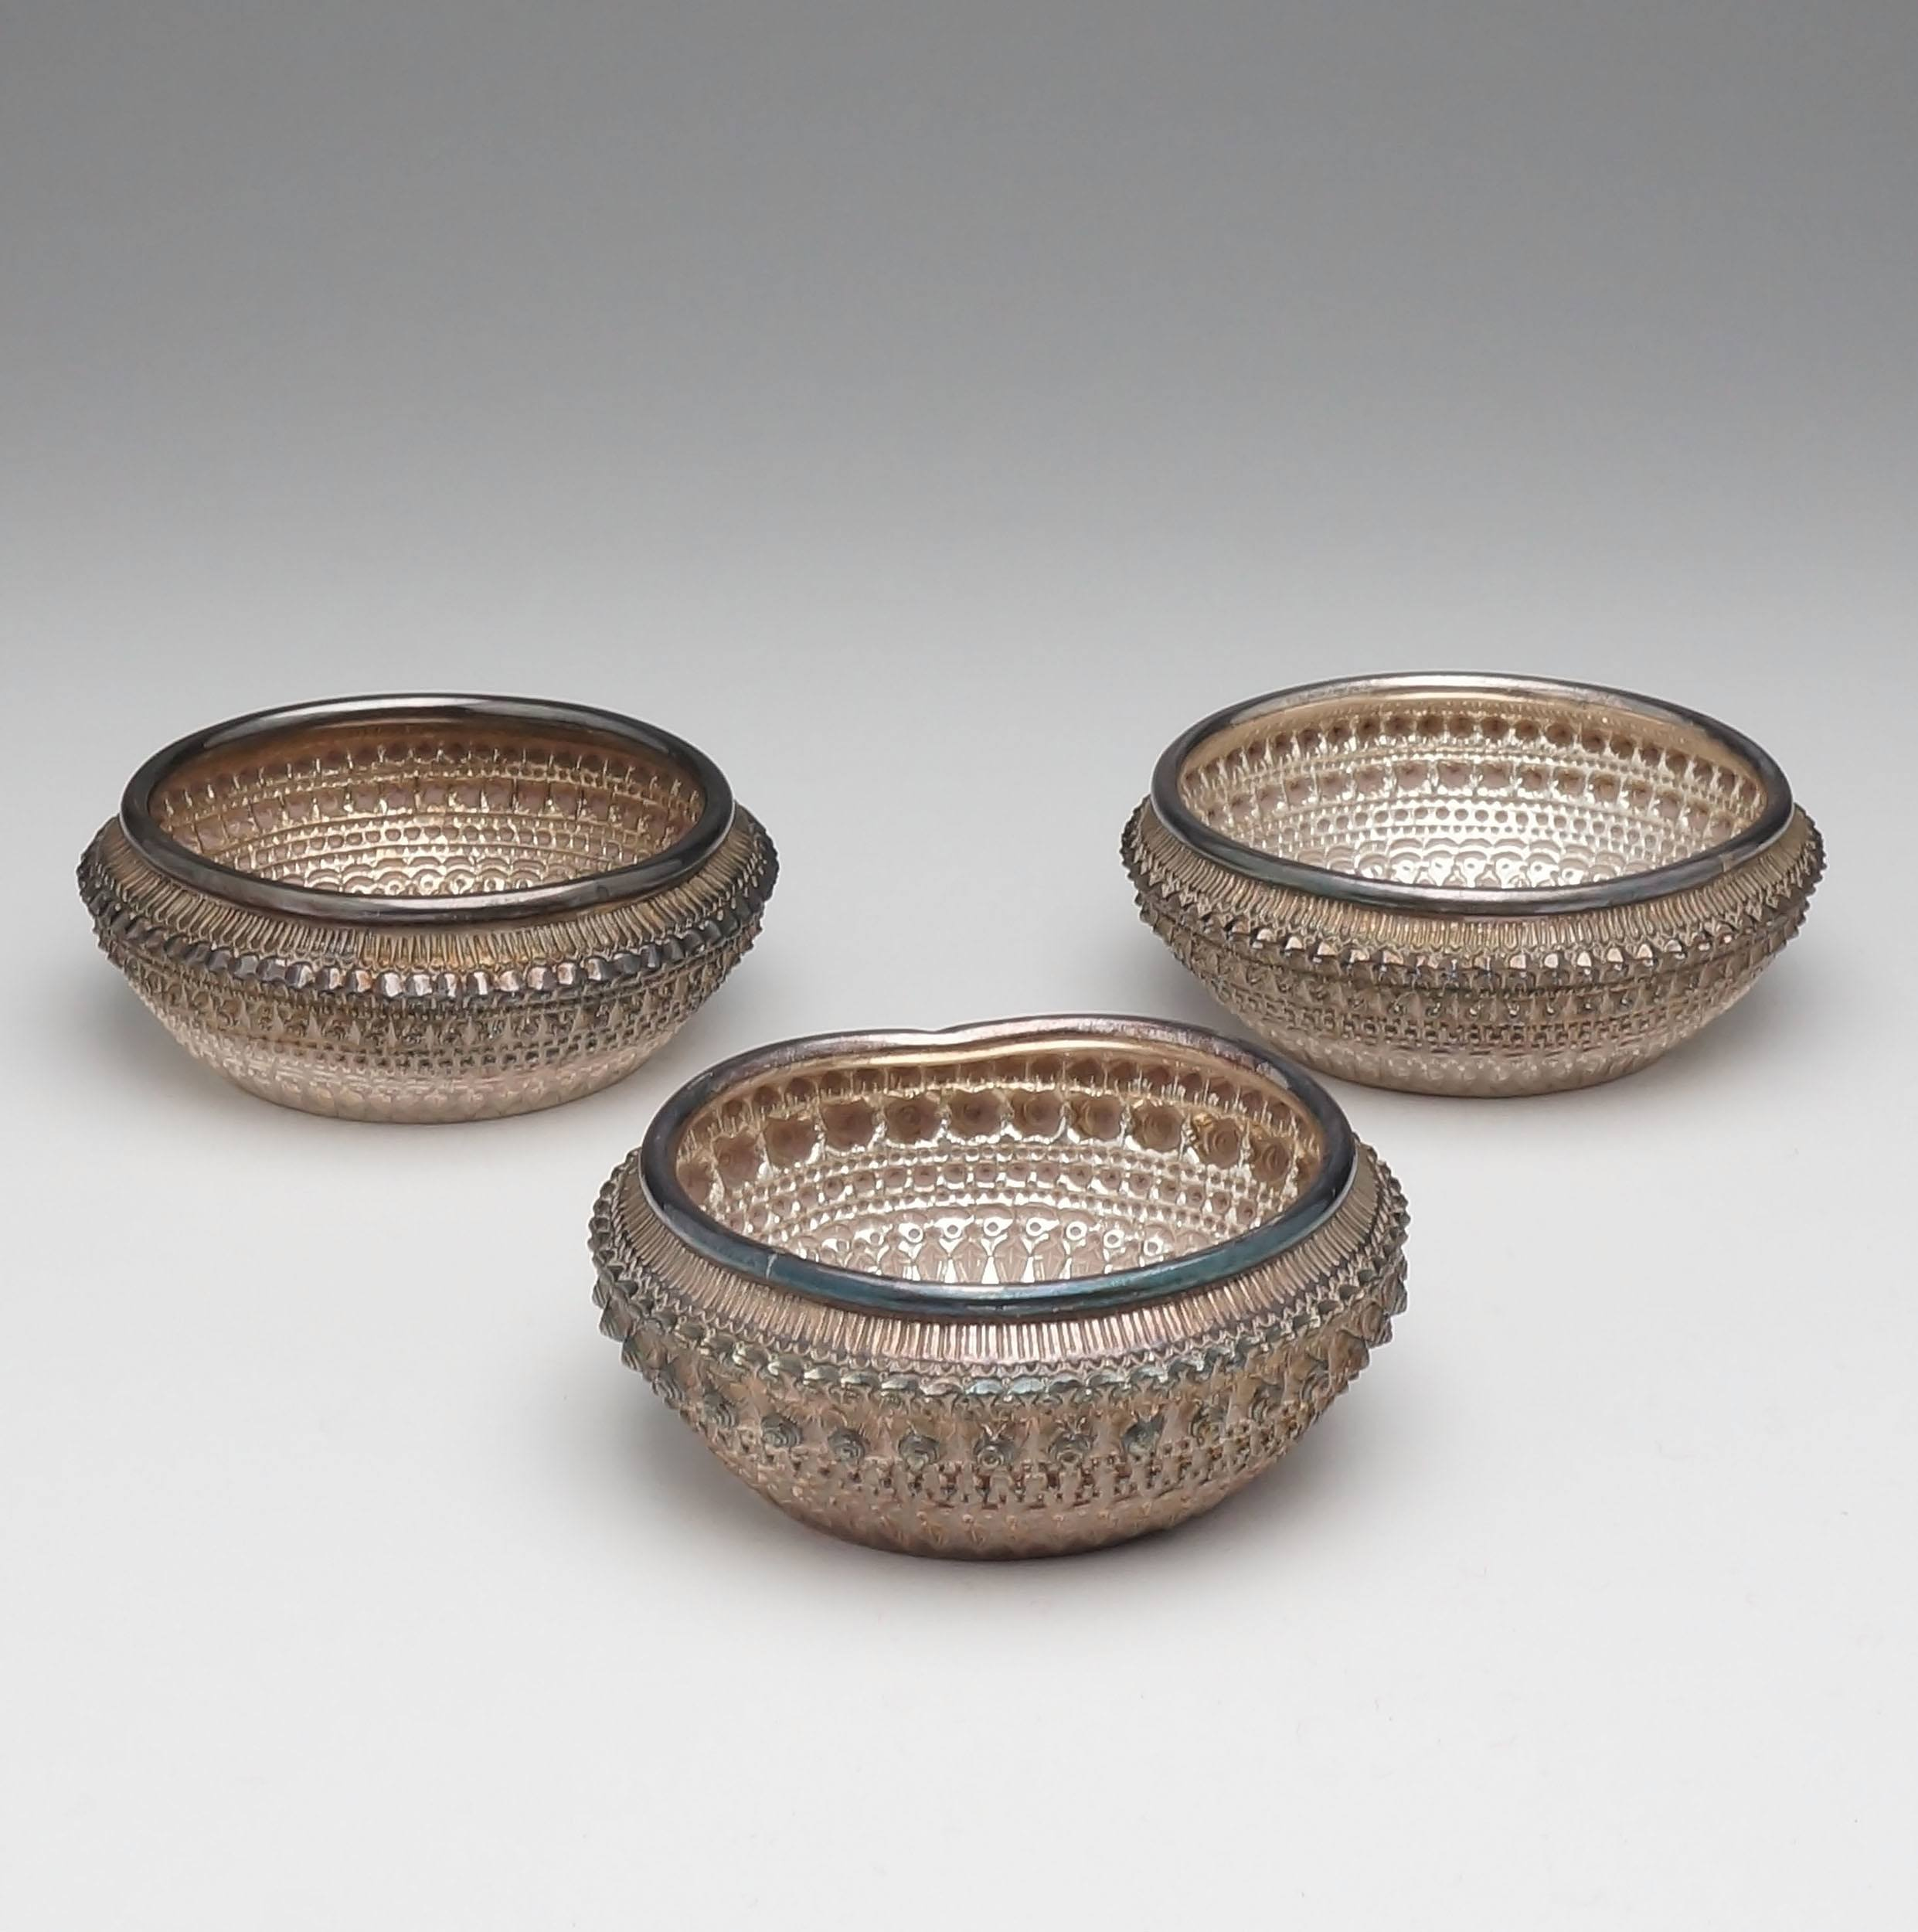 'Three Lao Silver Repousse and Engraved Finger Bowls, Gifts from the King and Queen of Laos'